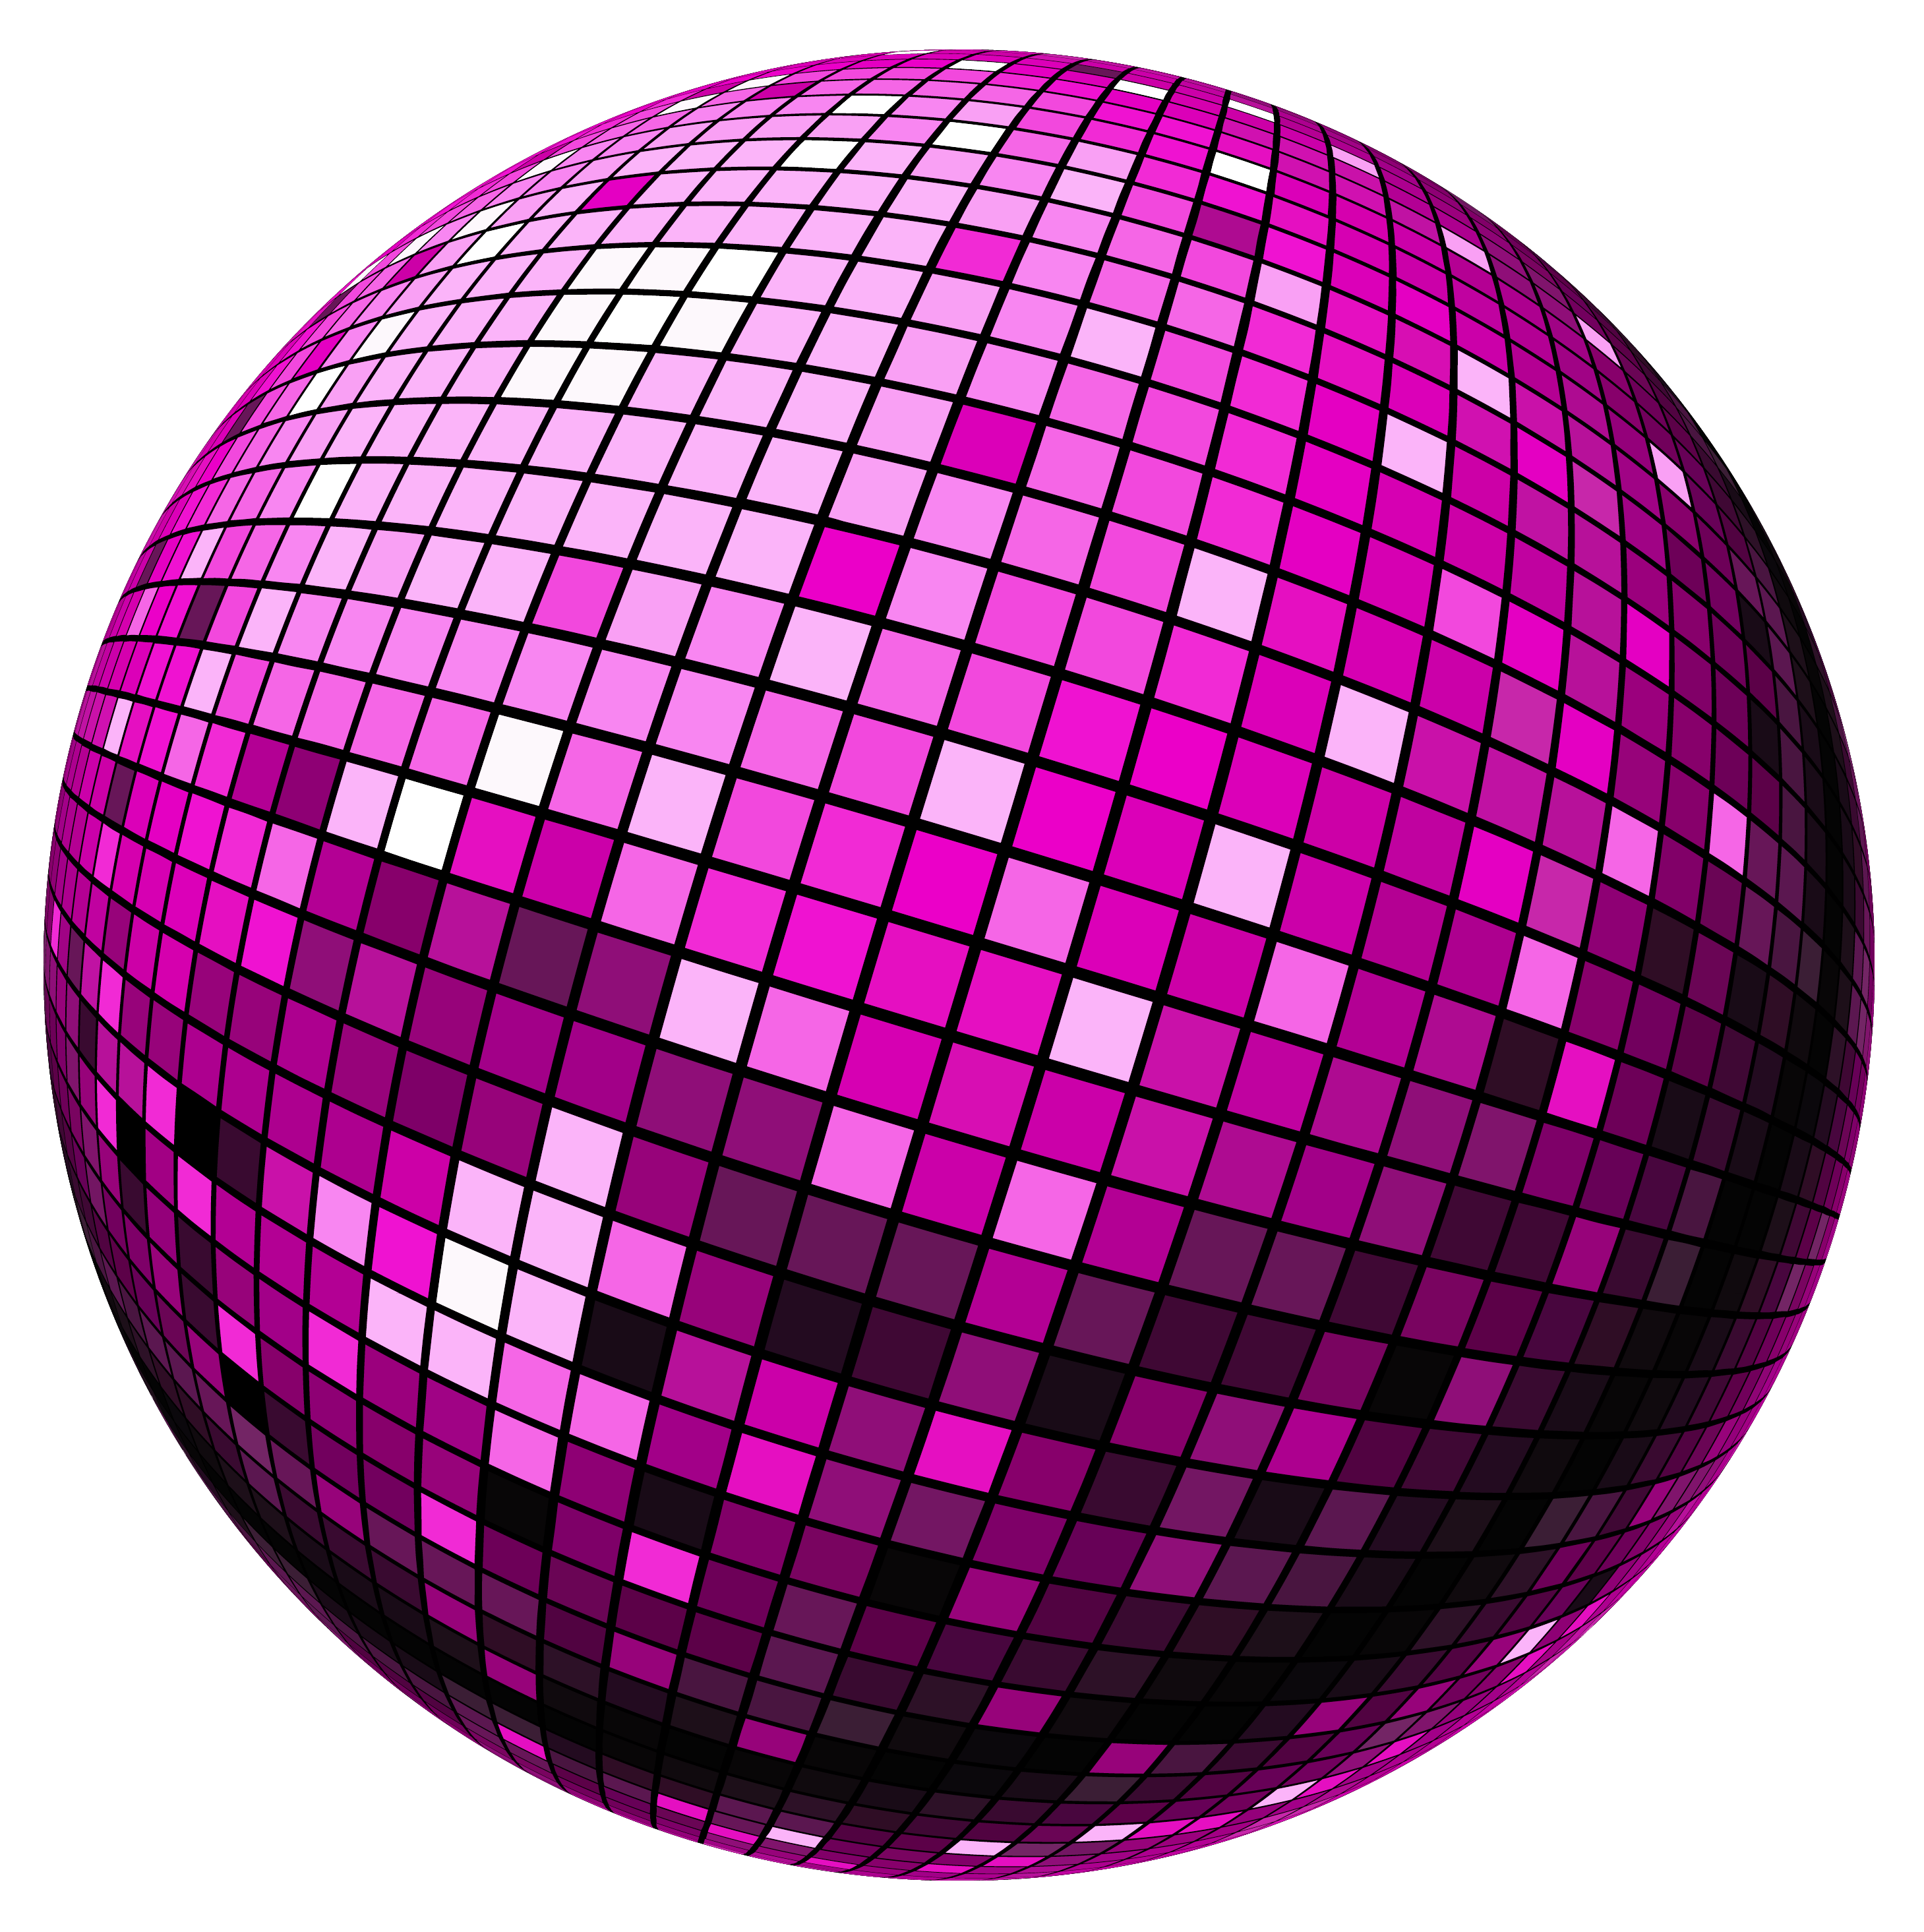 Disco Ball Png Vector Clipart Gallery Yopriceville High Quality Images And Transparent Png Free Clipart Clip Art Disco Ball Free Clip Art